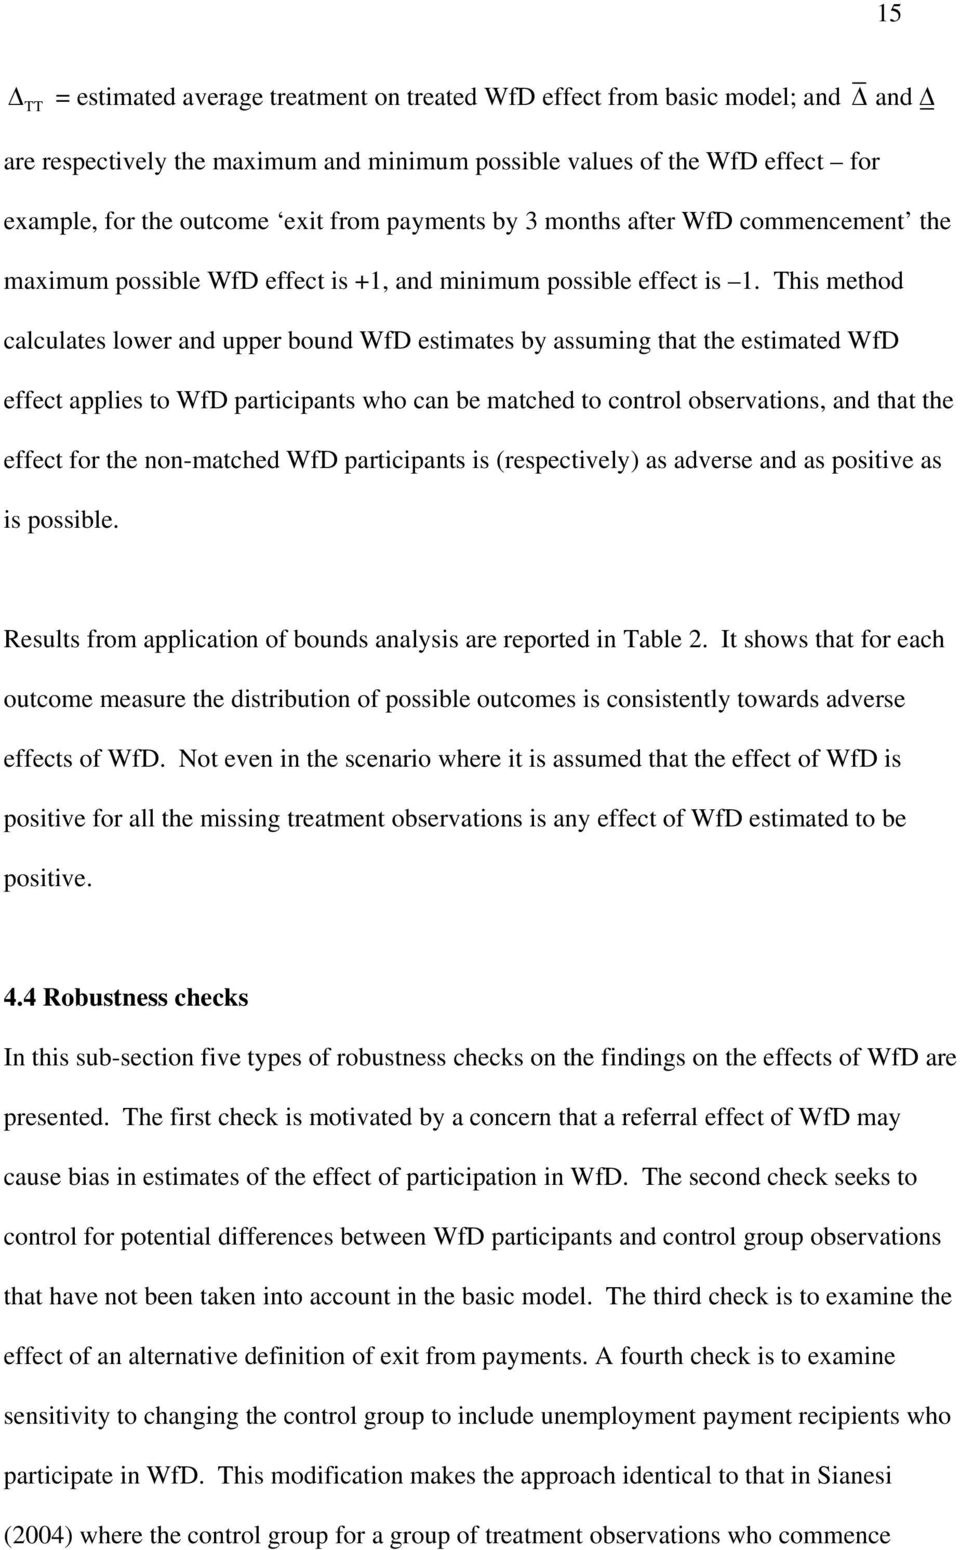 This method calculates lower and upper bound WfD estimates by assuming that the estimated WfD effect applies to WfD participants who can be matched to control observations, and that the effect for